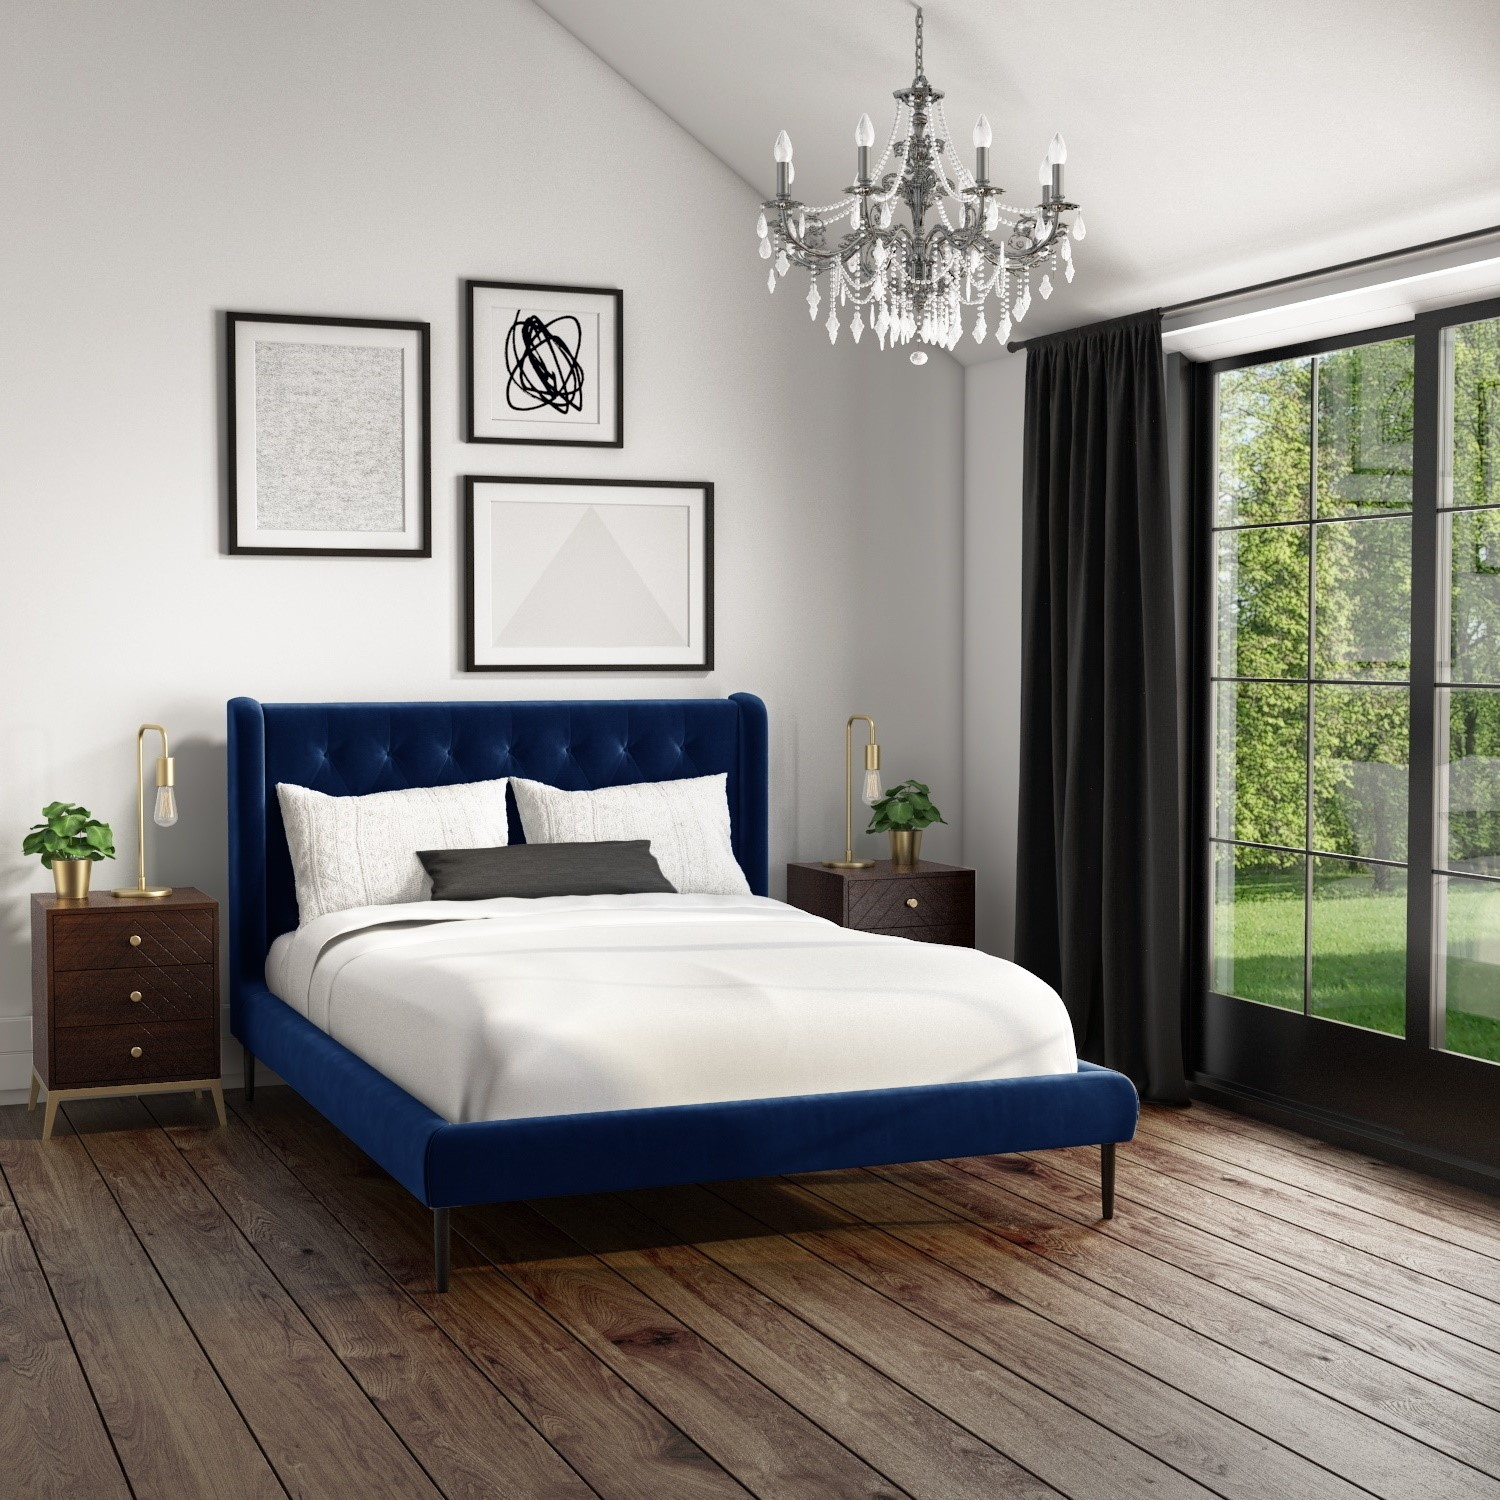 Picture of: Amara King Size Bed Frame In Navy Blue Velvet With Quilted Headboard Furniture123